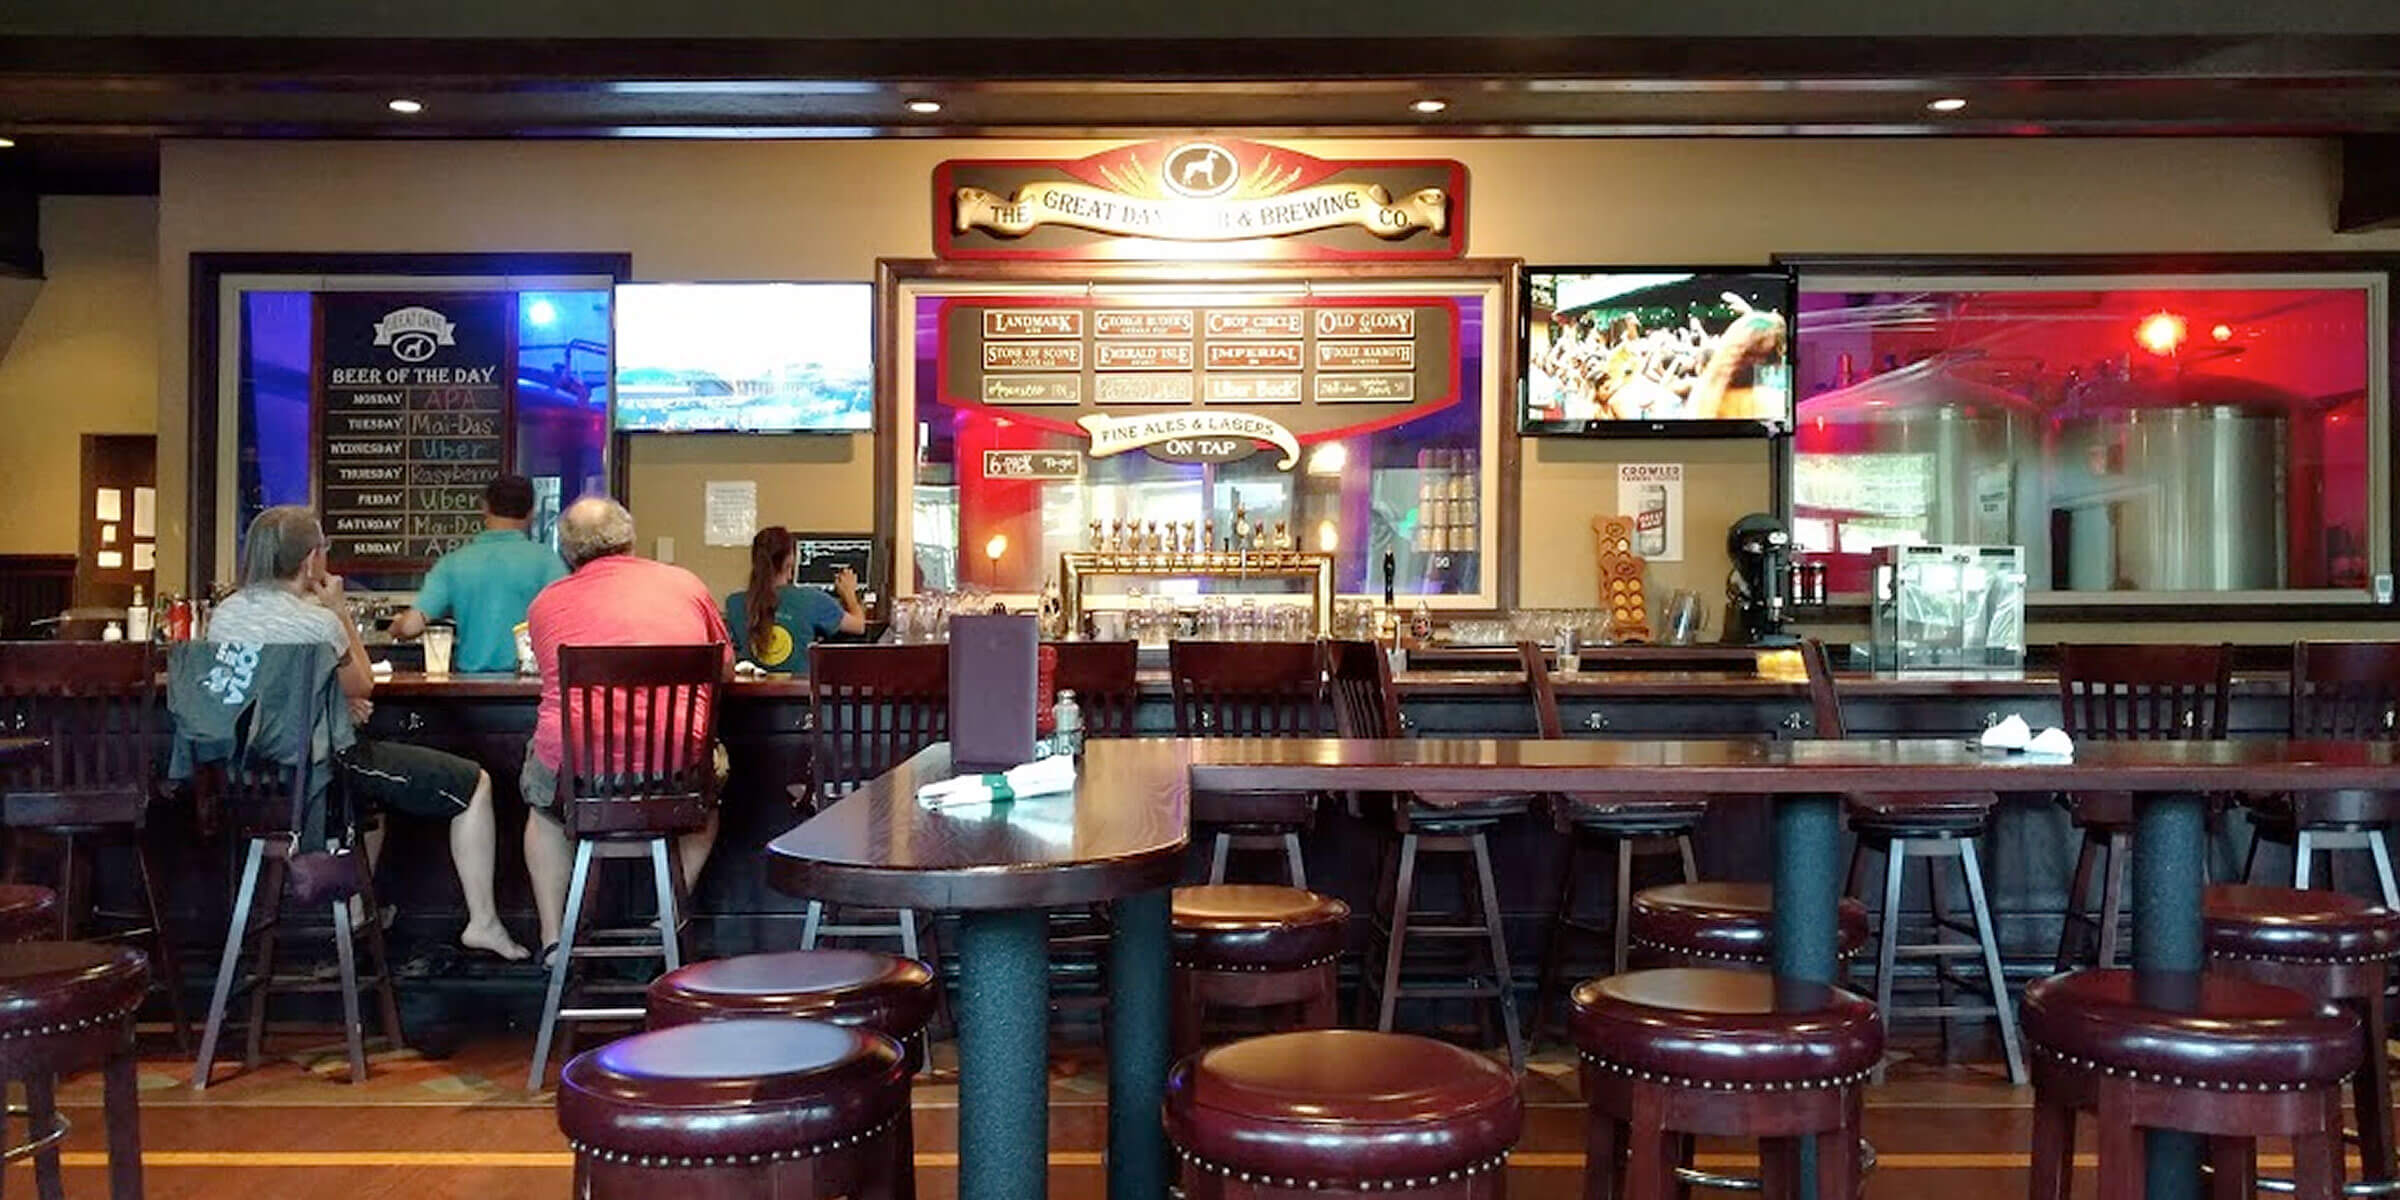 Inside the taproom at Great Dane Pub & Brewing Company in Wausau, Wisconsin